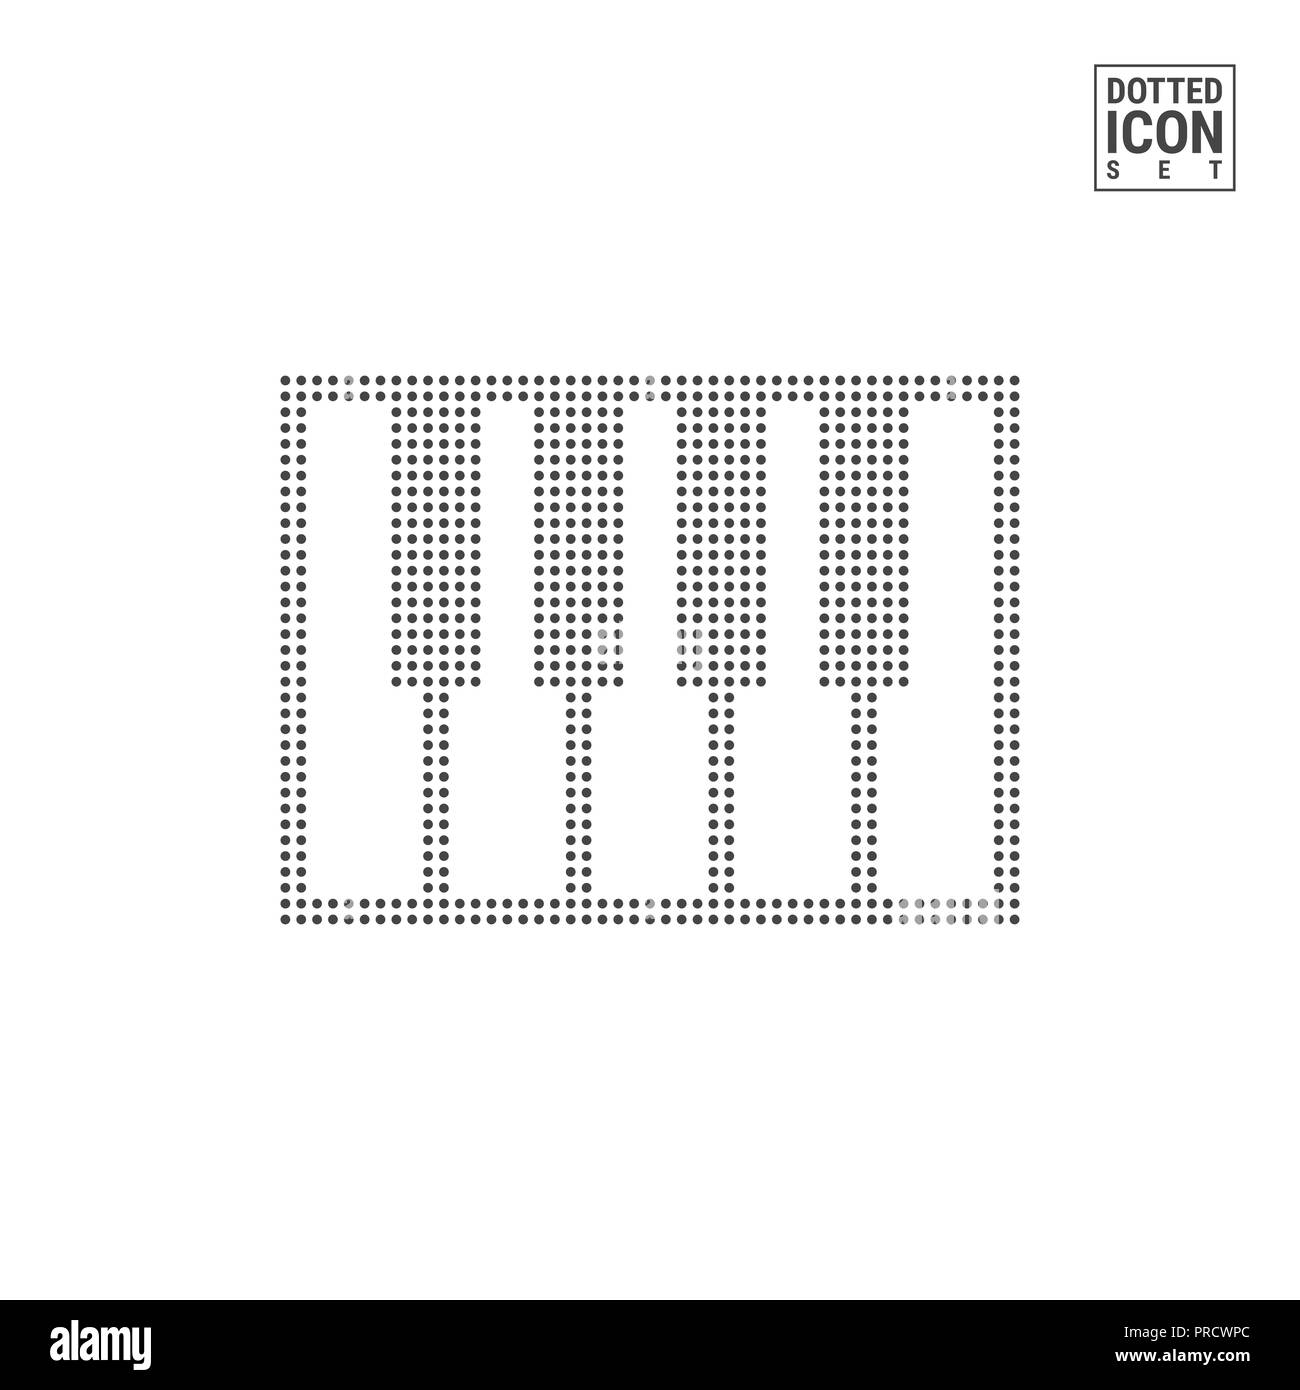 Piano Keys Dot Pattern Icon. Synthesizer, MIDI Keyboard Dotted Icon Isolated on White. Background, Design Template. Can Be Used for Advertising, Web a - Stock Image